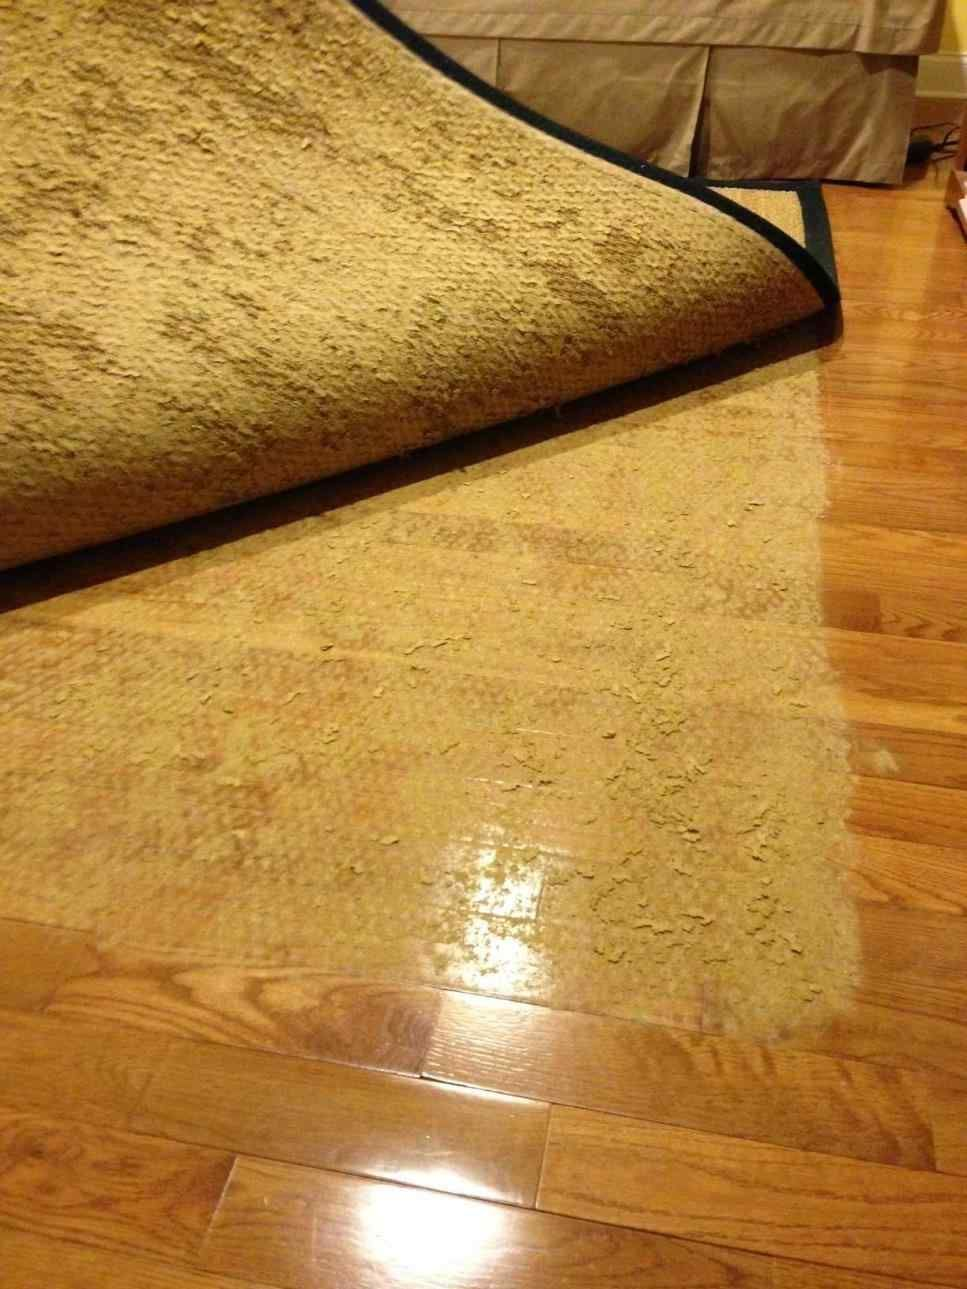 13 Best Rugs Ideas For Dark Hardwood Floors Breakpr Cleaning Area Rugs Cool Rugs Rubber Rugs